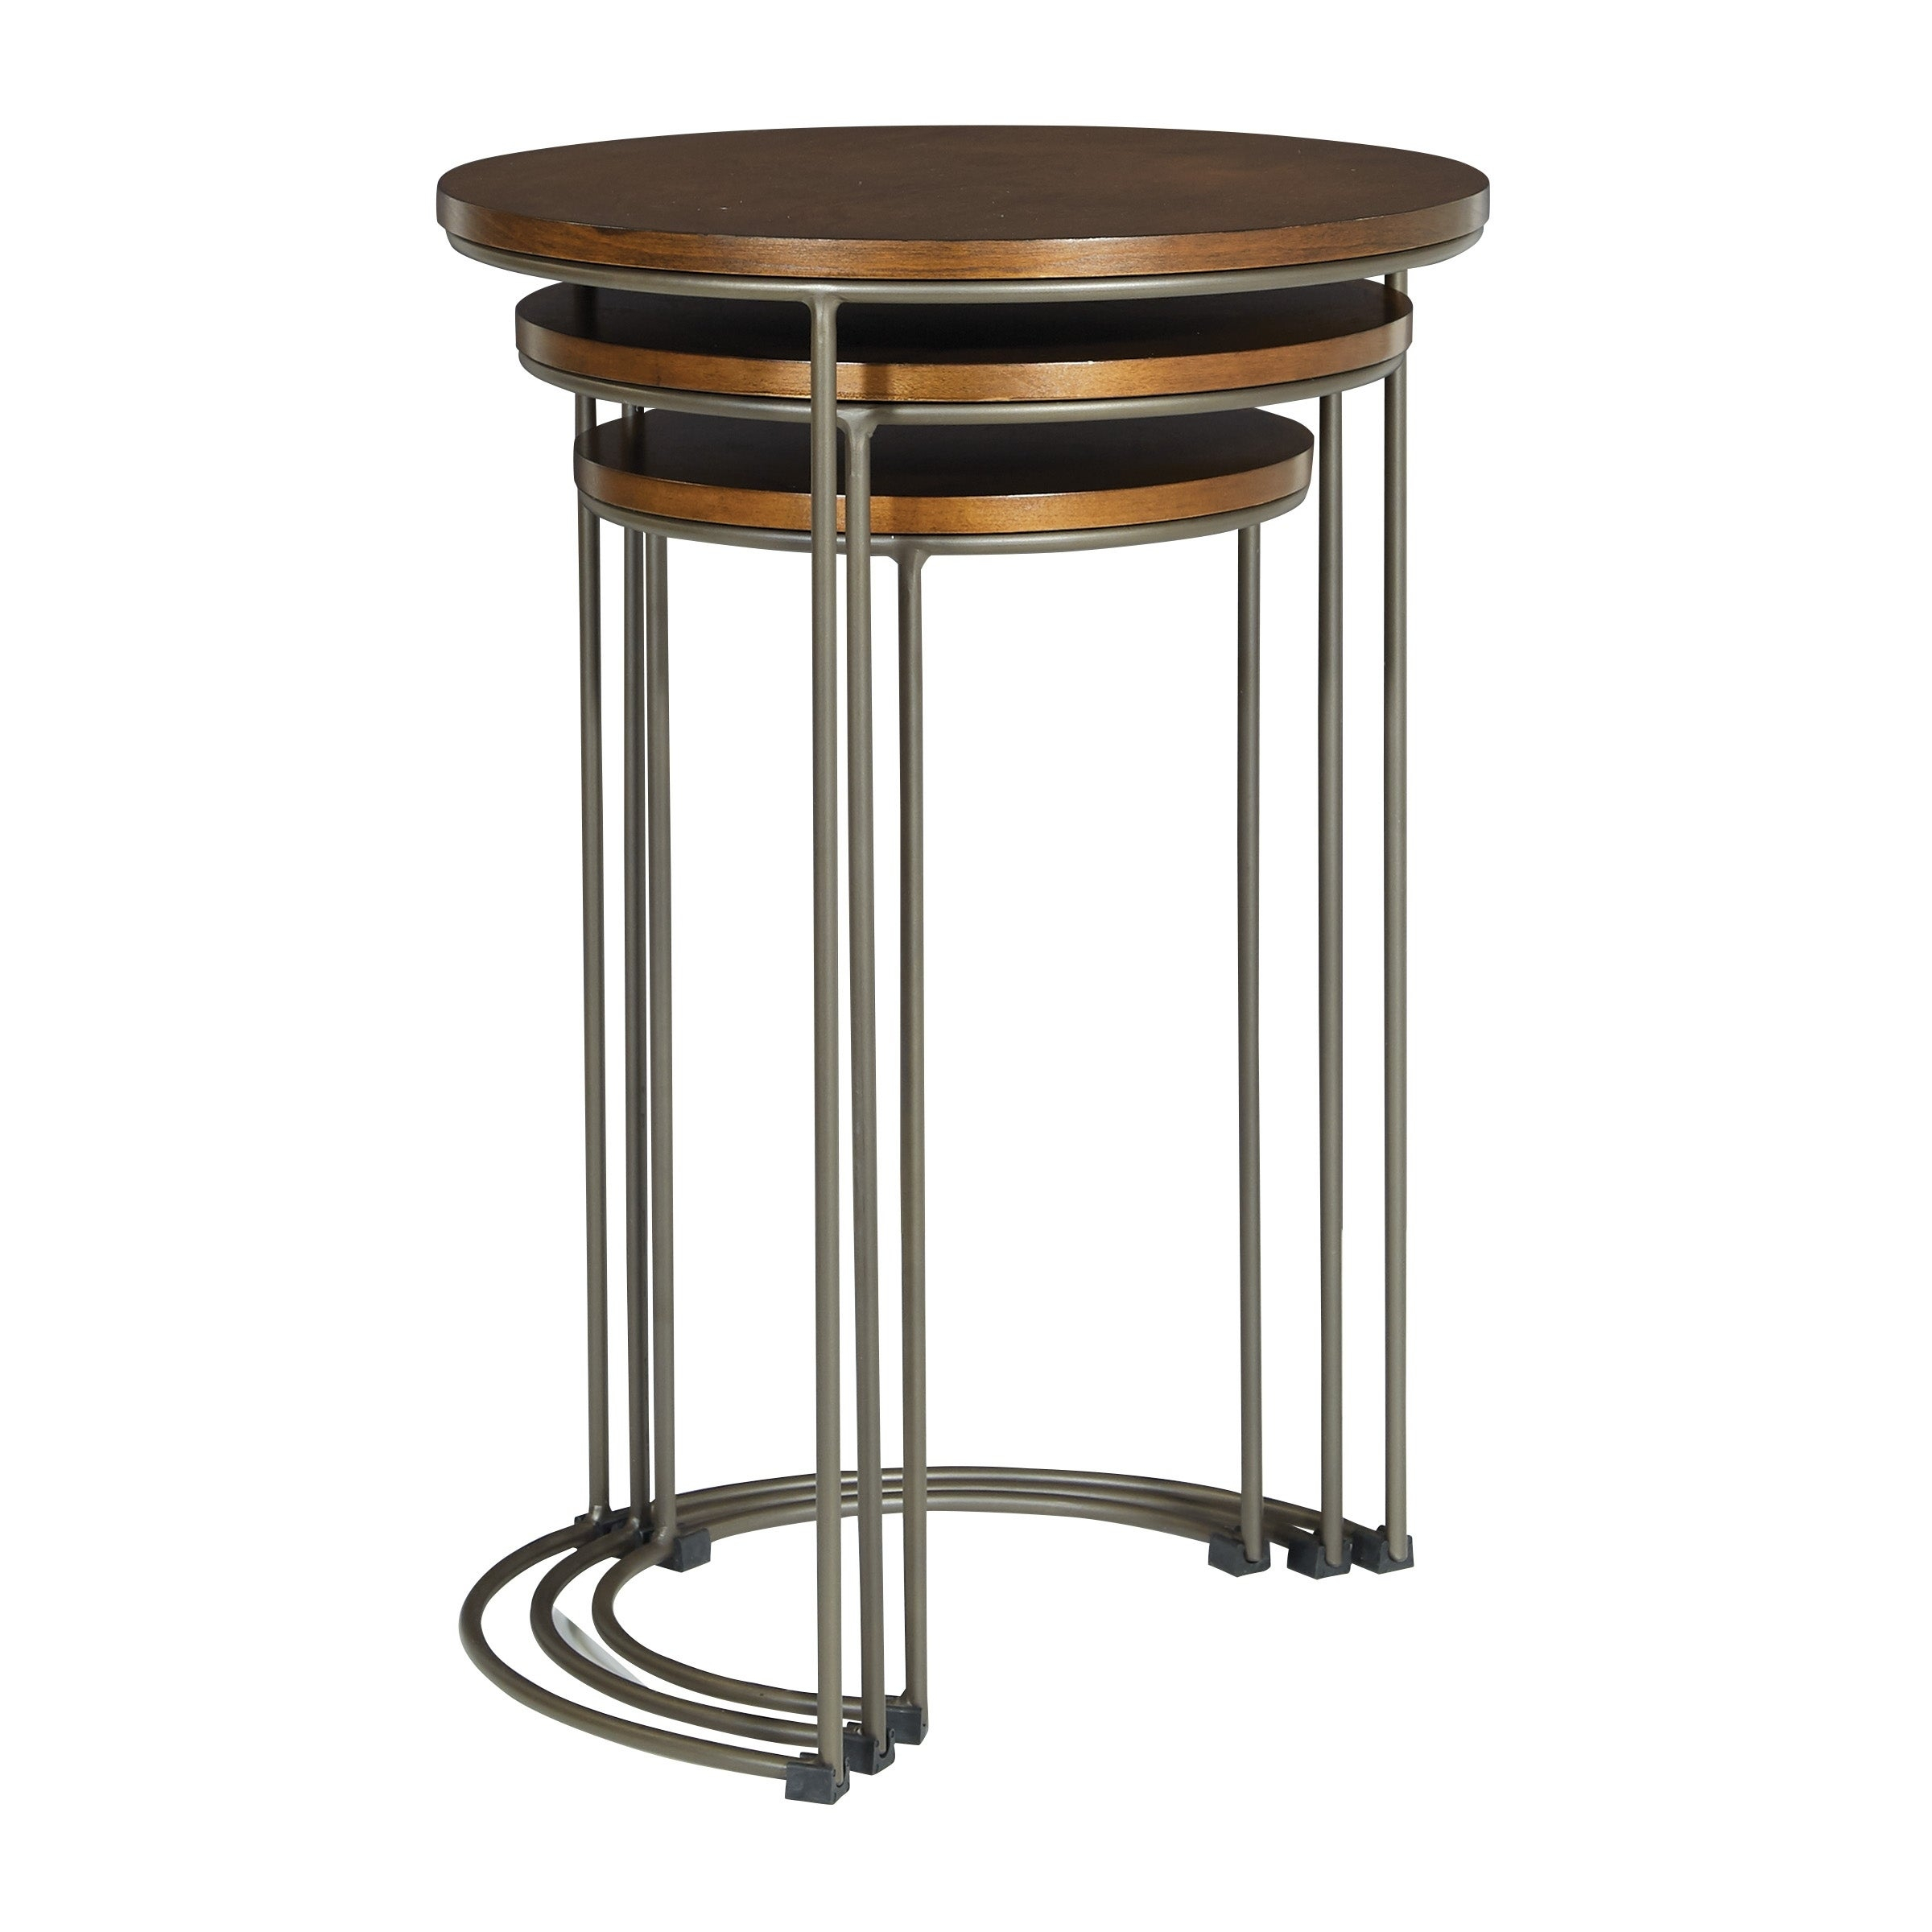 Osp Home Furnishings Sullivan 3 Piece Nesting Tables With Pewter Walnut  Finish Intended For Current Isolde 3 Piece Dining Sets (Image 17 of 20)